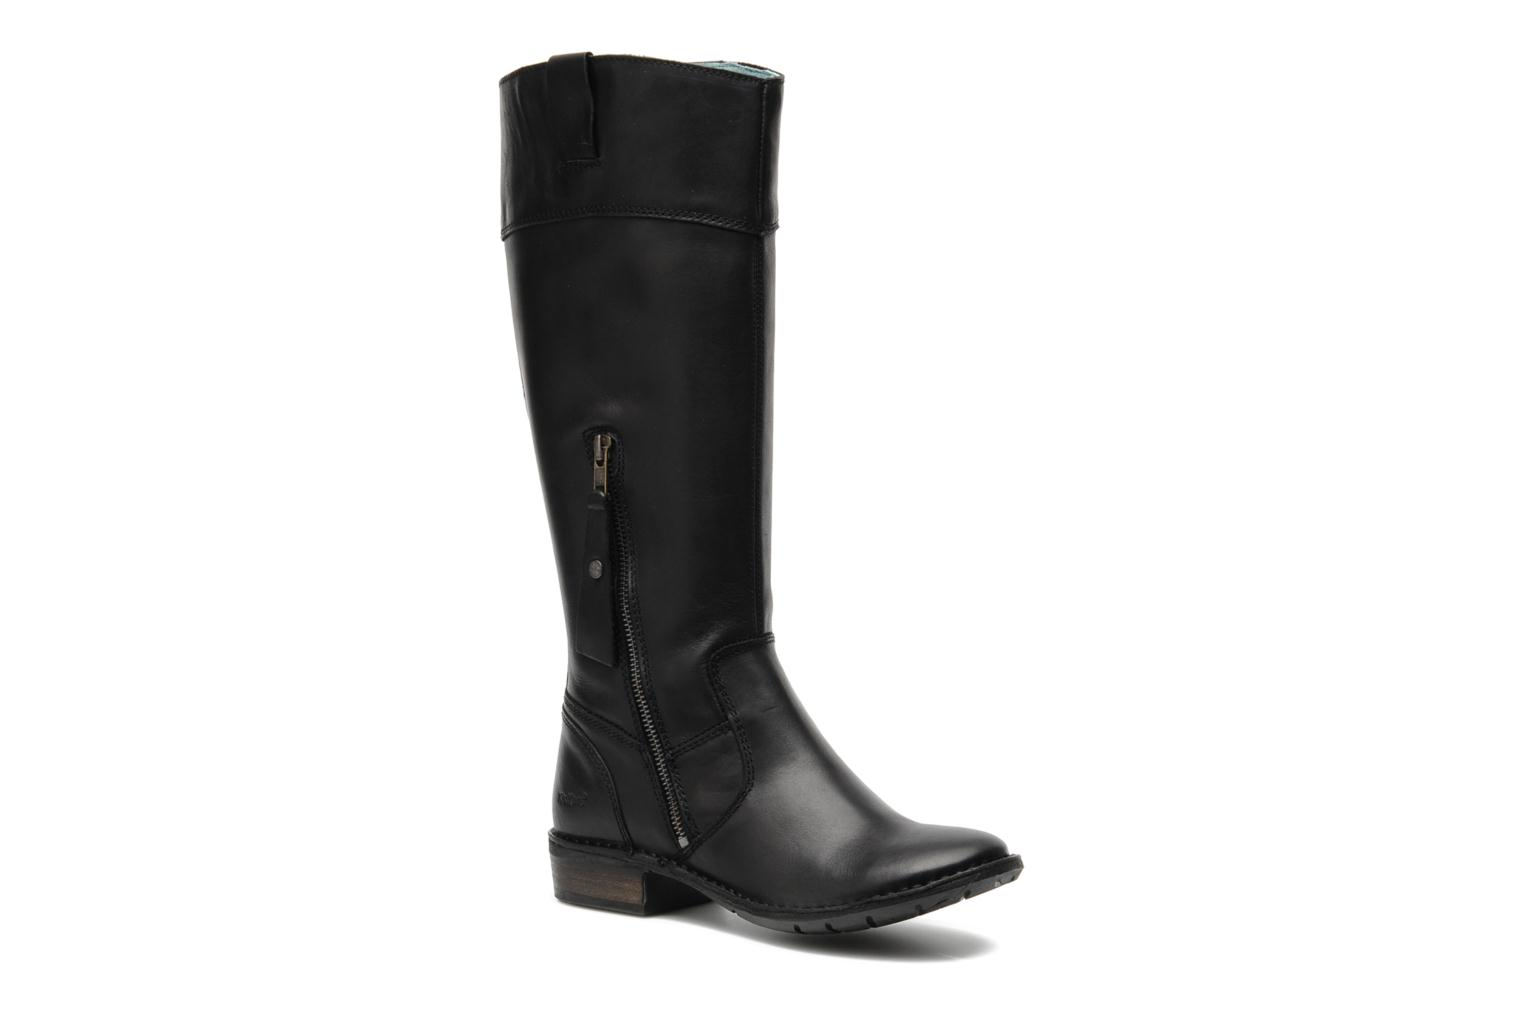 Marques Chaussure femme Kickers femme GROOVE UP Noir (8)